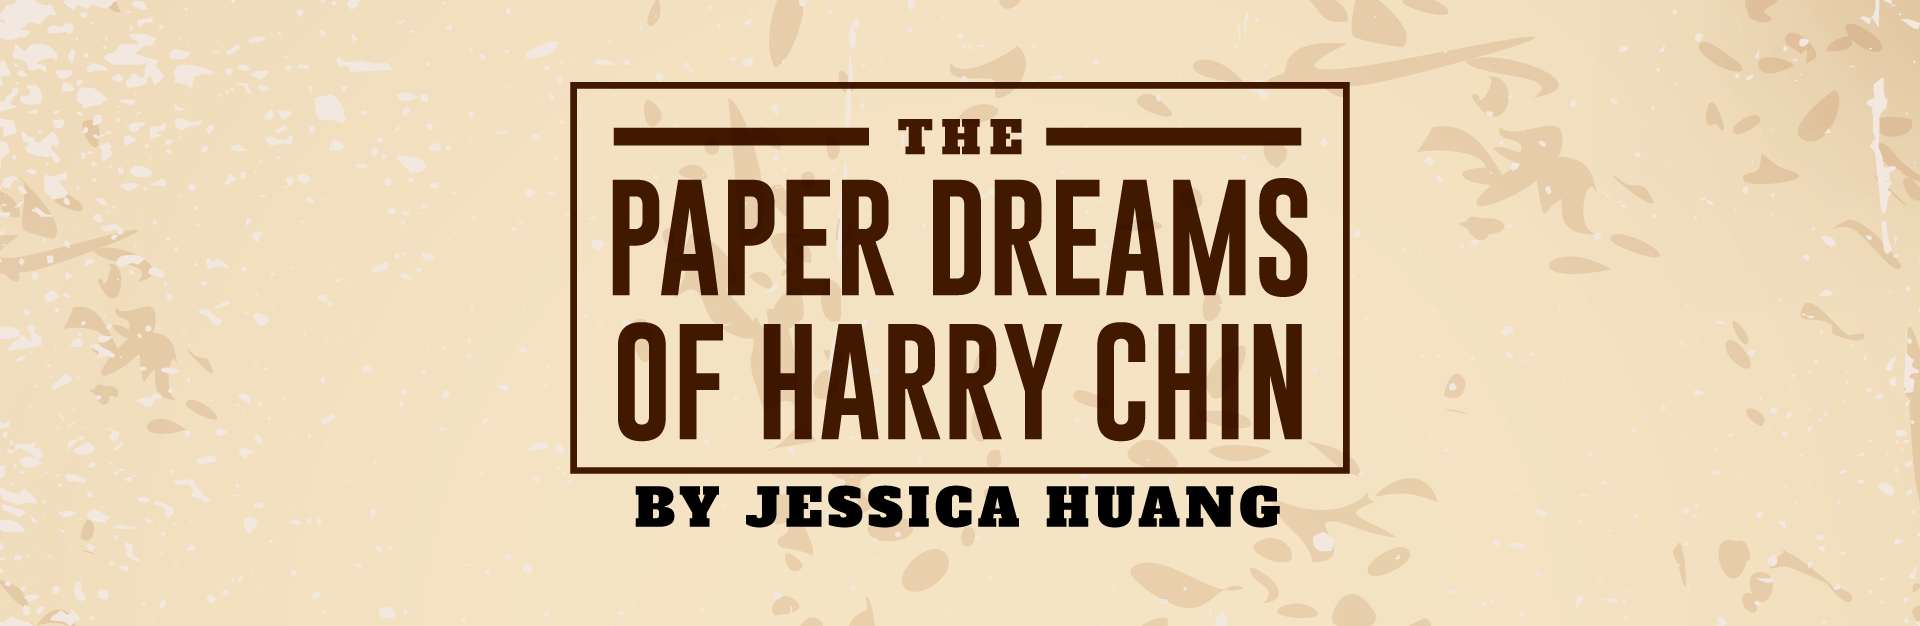 The Paper Dreams of Harry Chin